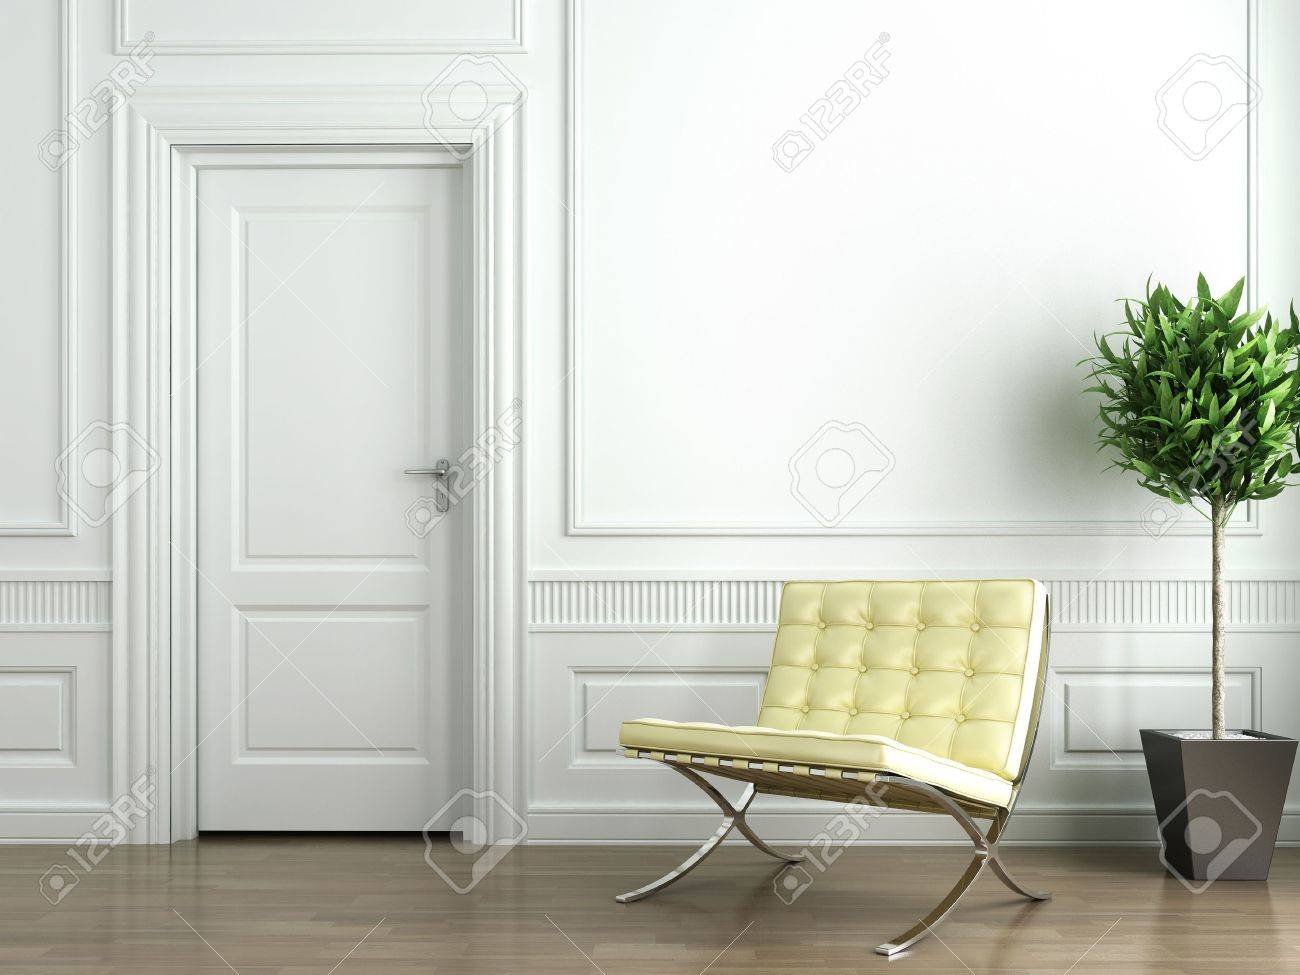 Classic white interior with chair and plant Stock Photo - 4327166